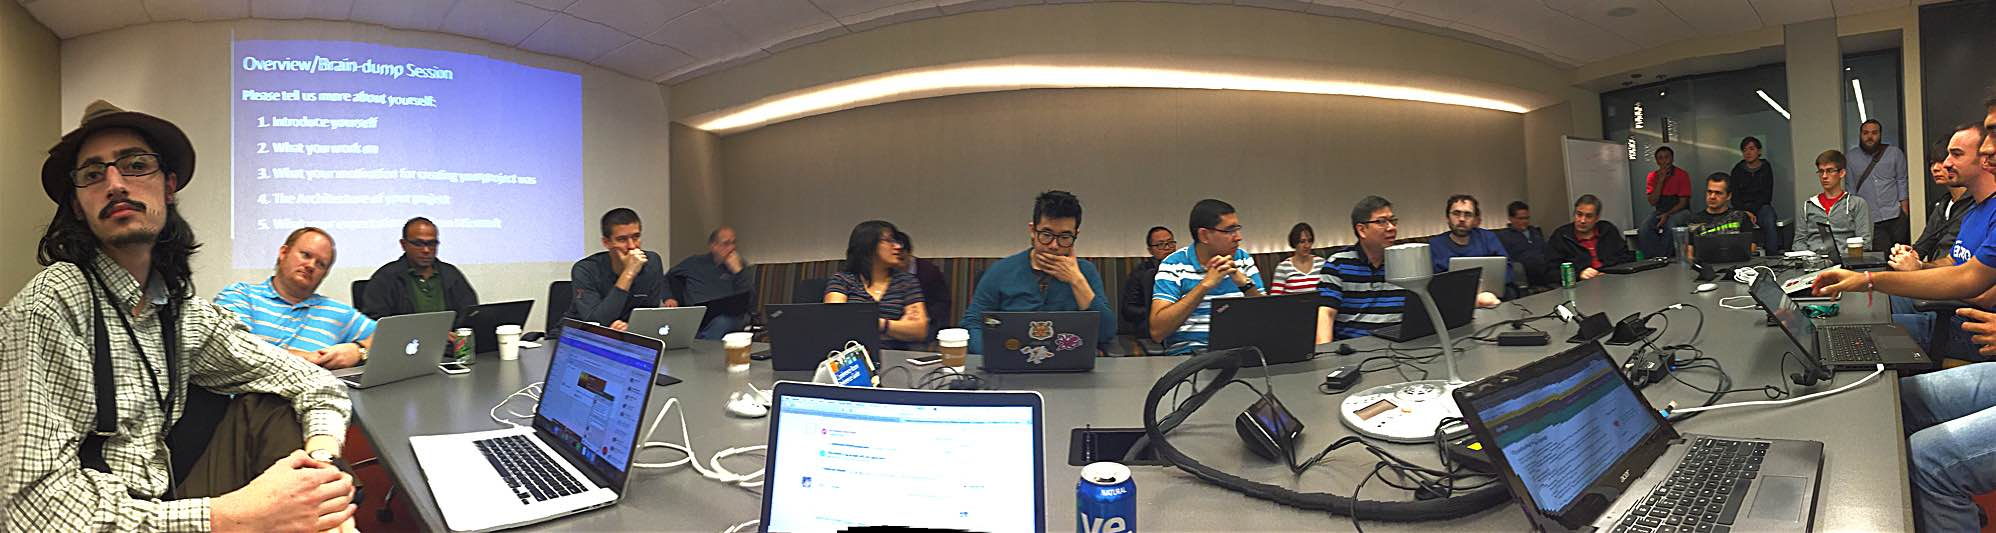 First day of introductions at Microsoft's OSSDataCamp